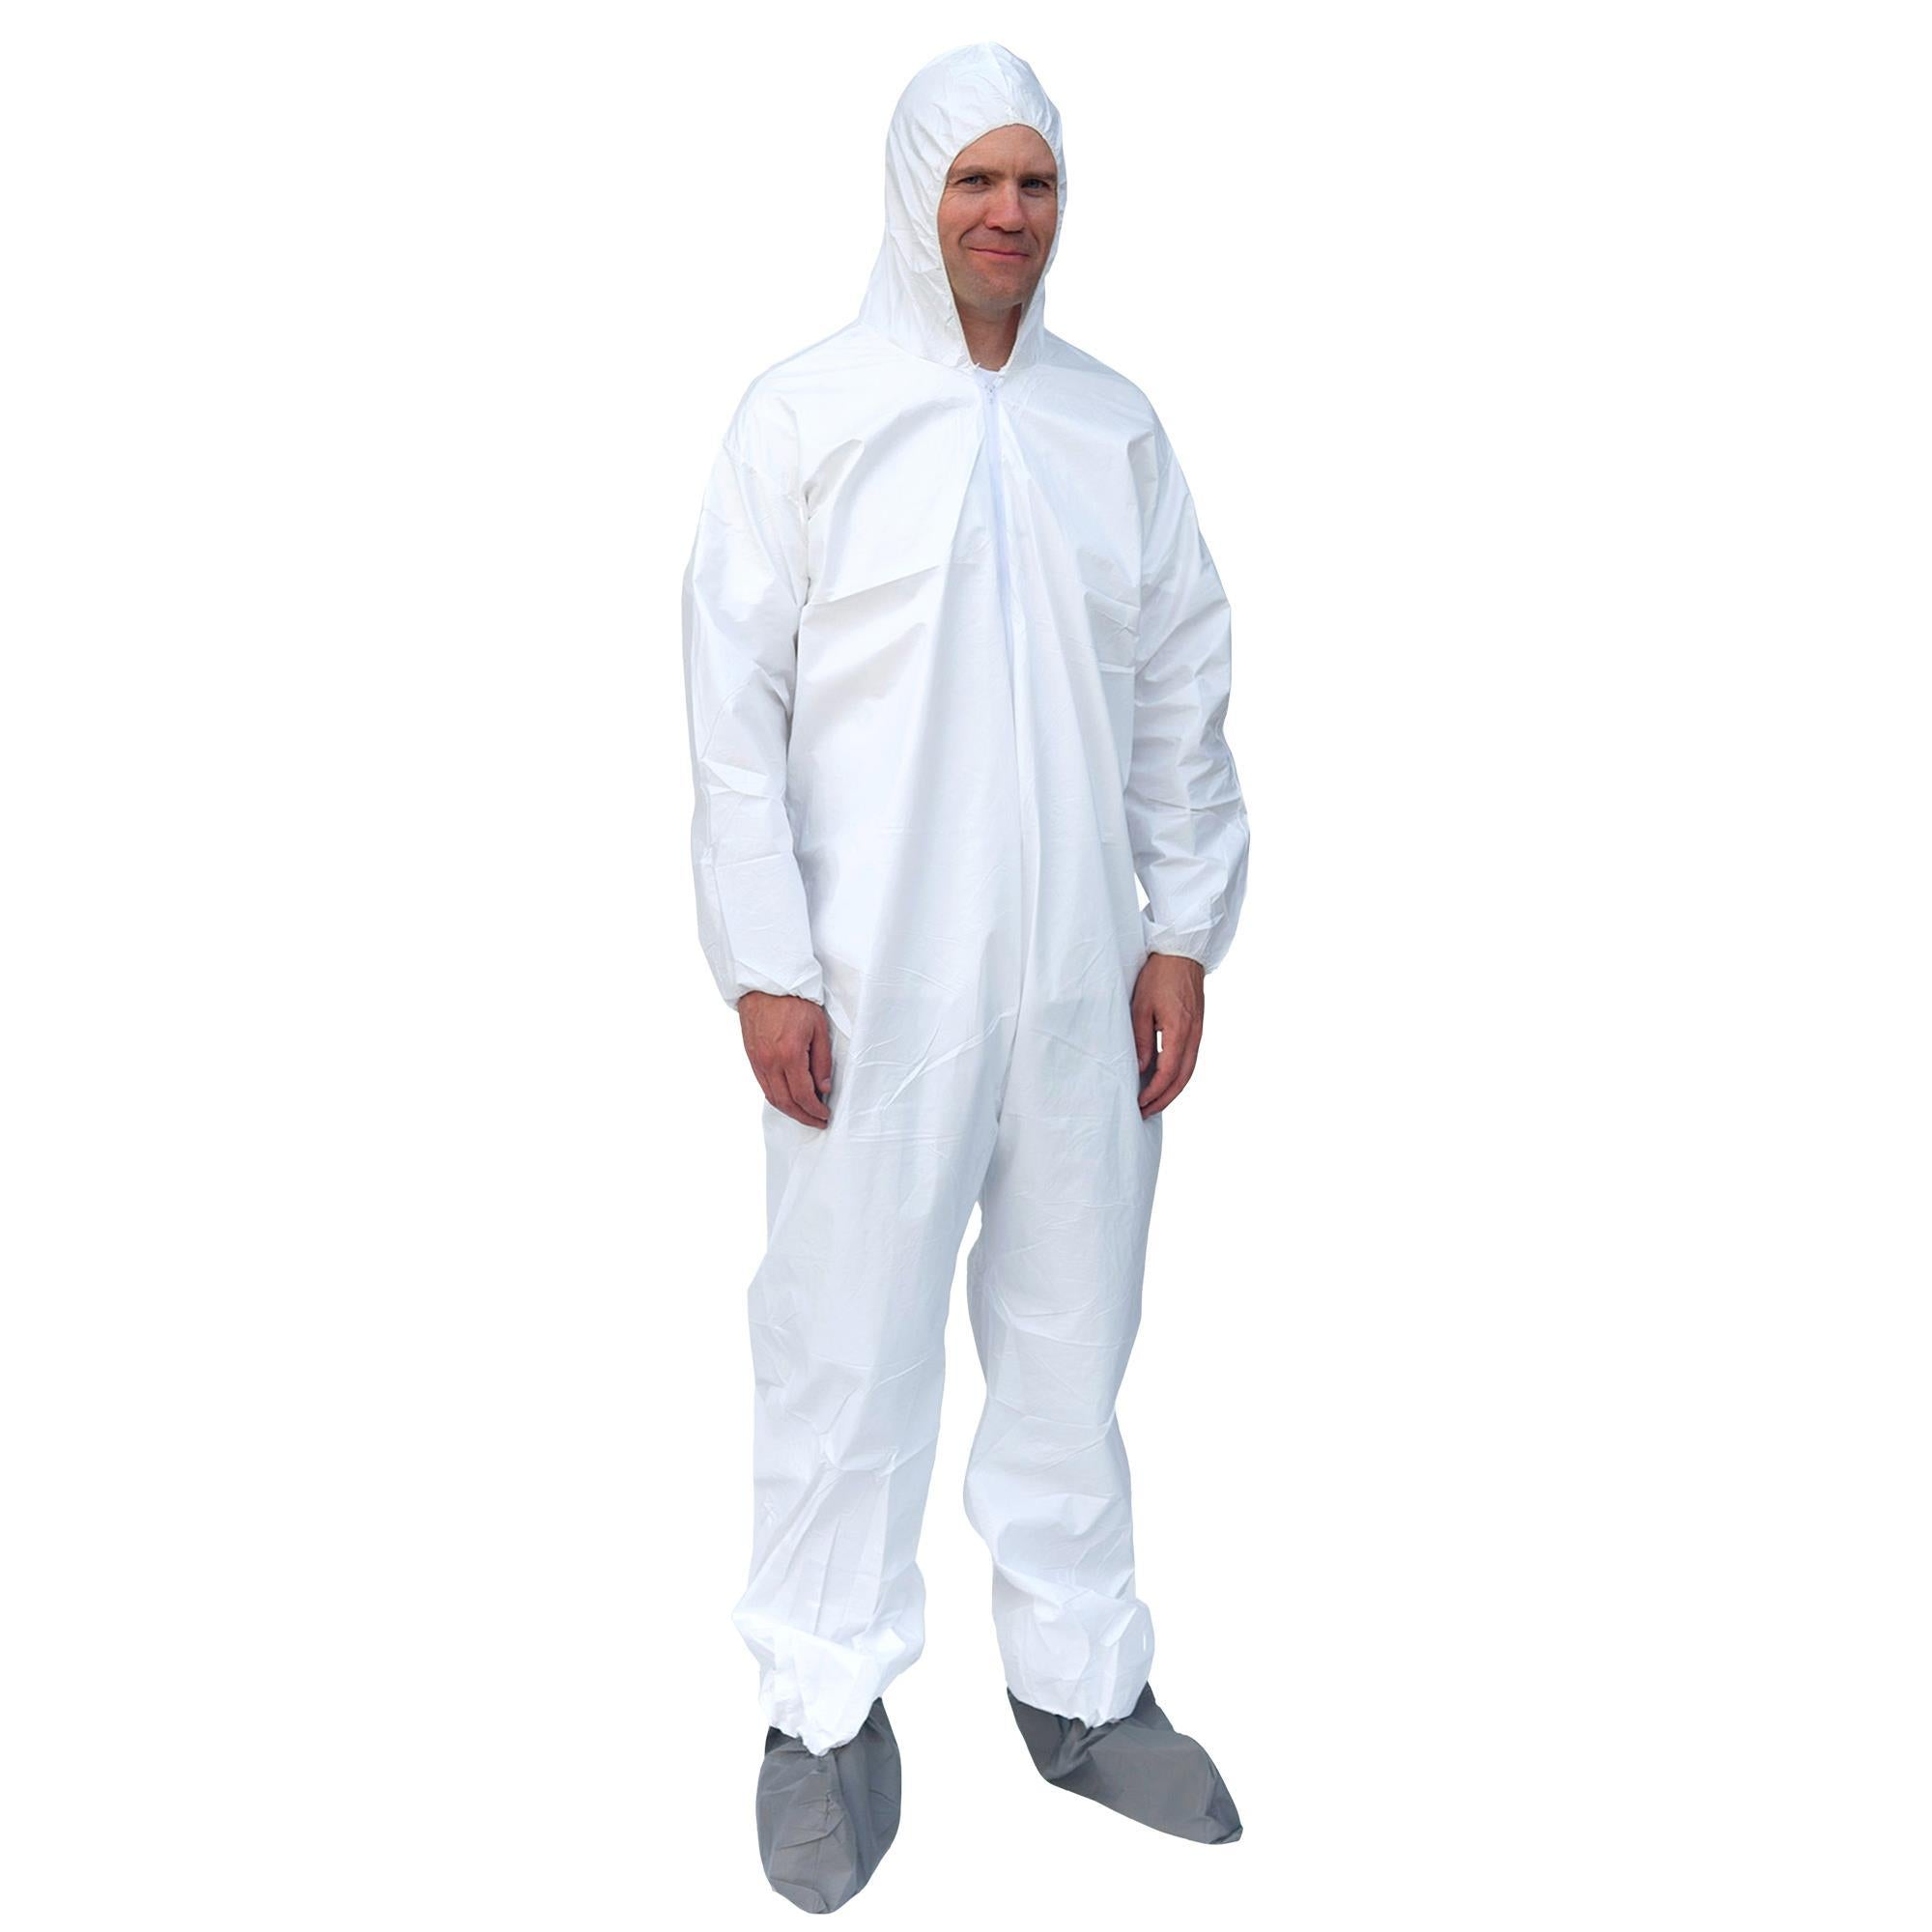 14813 PC261 Zippered Coveralls with Hood and Boot Covers (includes 25 pair of coveralls and boot covers)